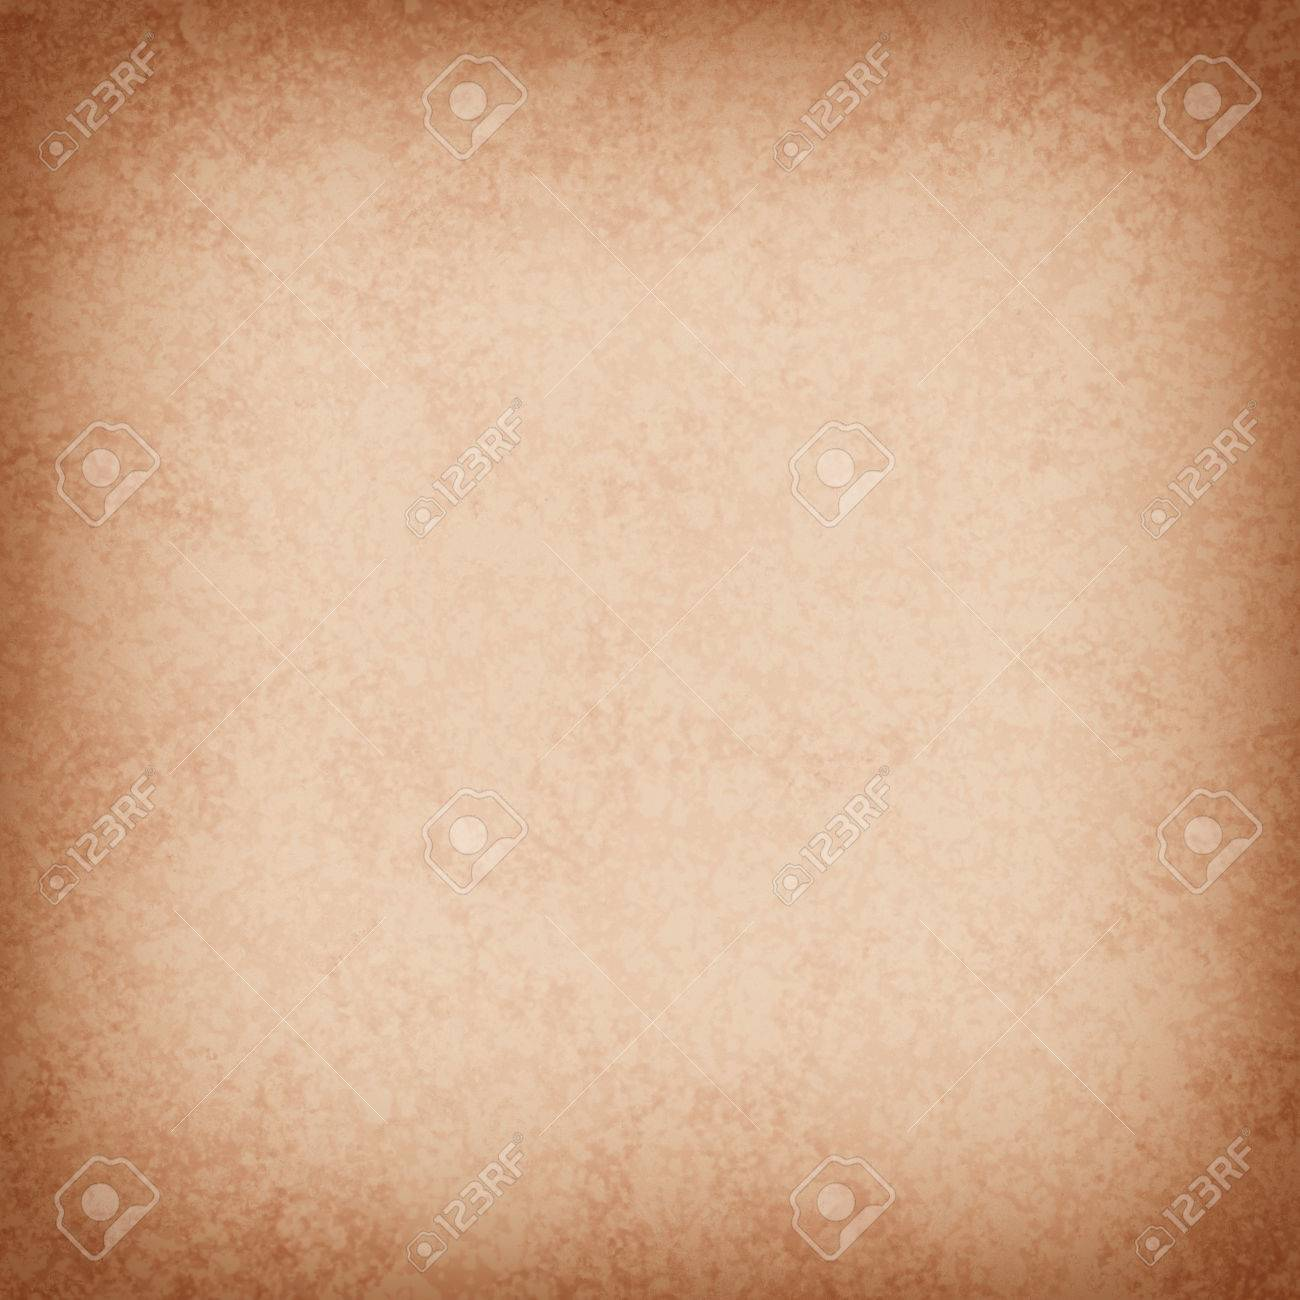 Beige Or Light Brown Background Paper With Distressed Vintage Texture And Faint Darker Grunge Border